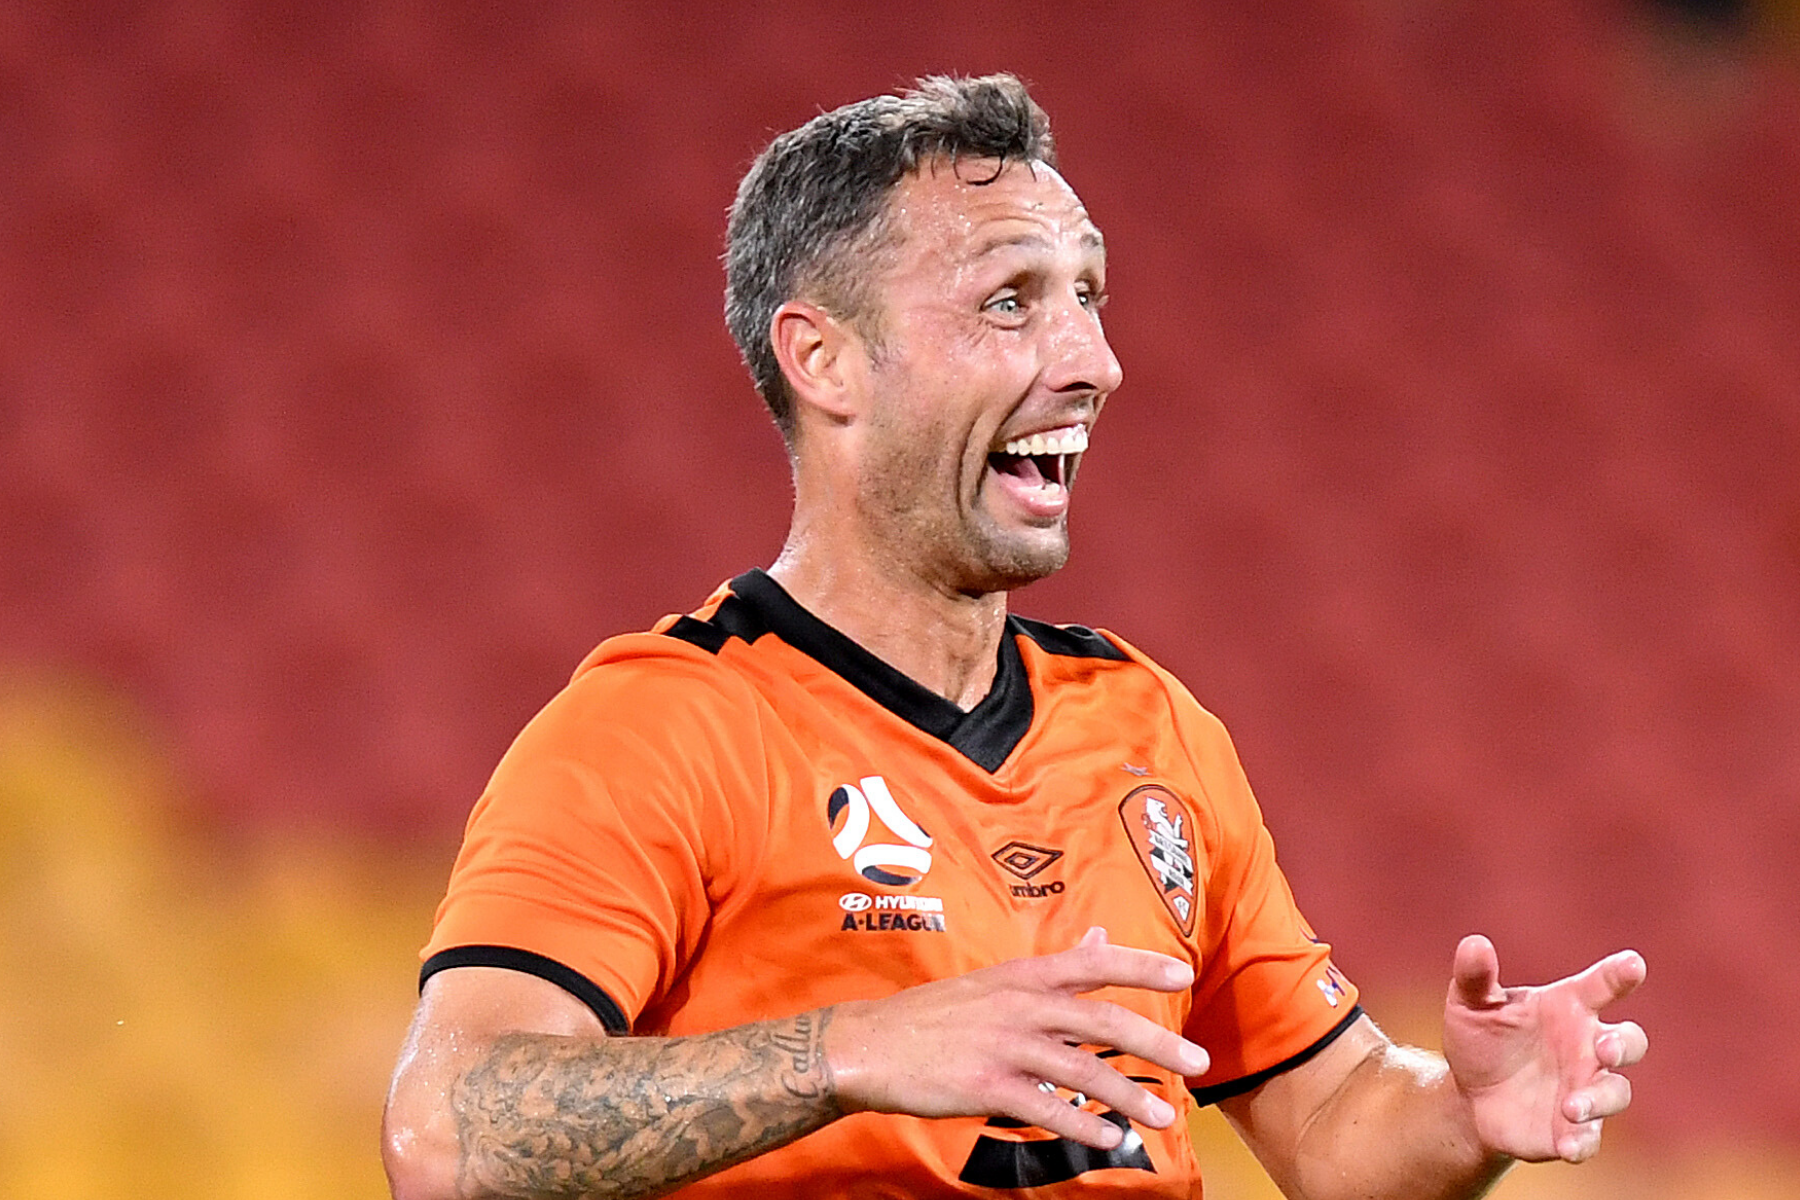 Ex-Celtic and Partick Thistle ace Scott McDonald nets fourth goal in three games for Brisbane Roar